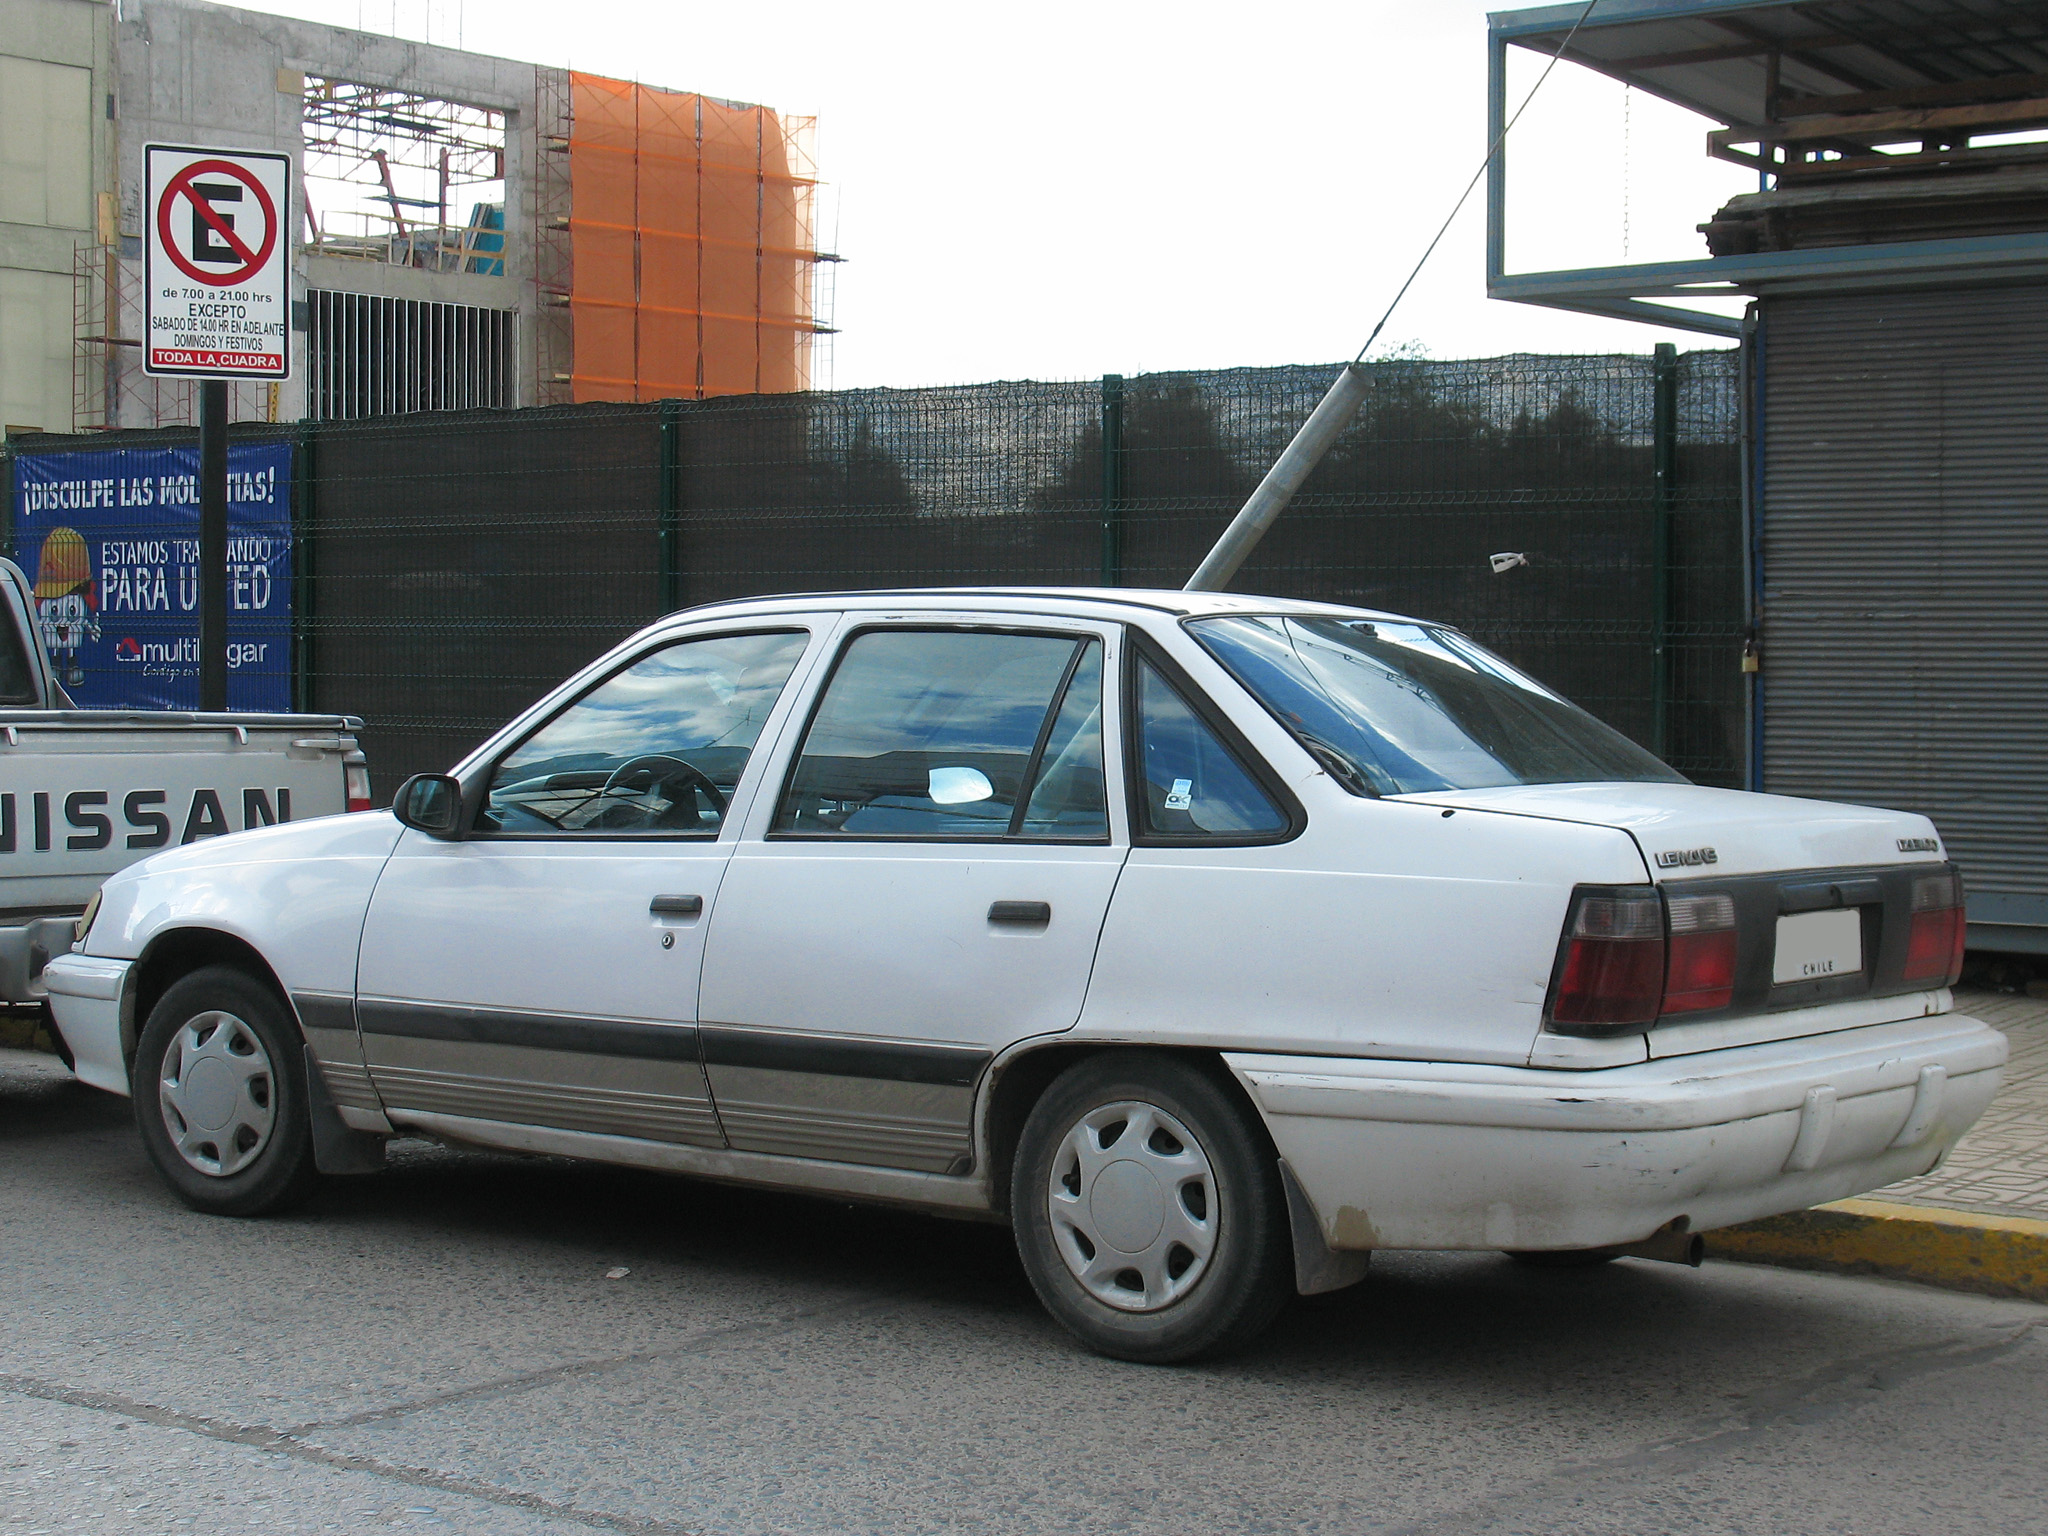 File:Daewoo Lemans 1.5 1994 (9521528026).jpg - Wikimedia Commons